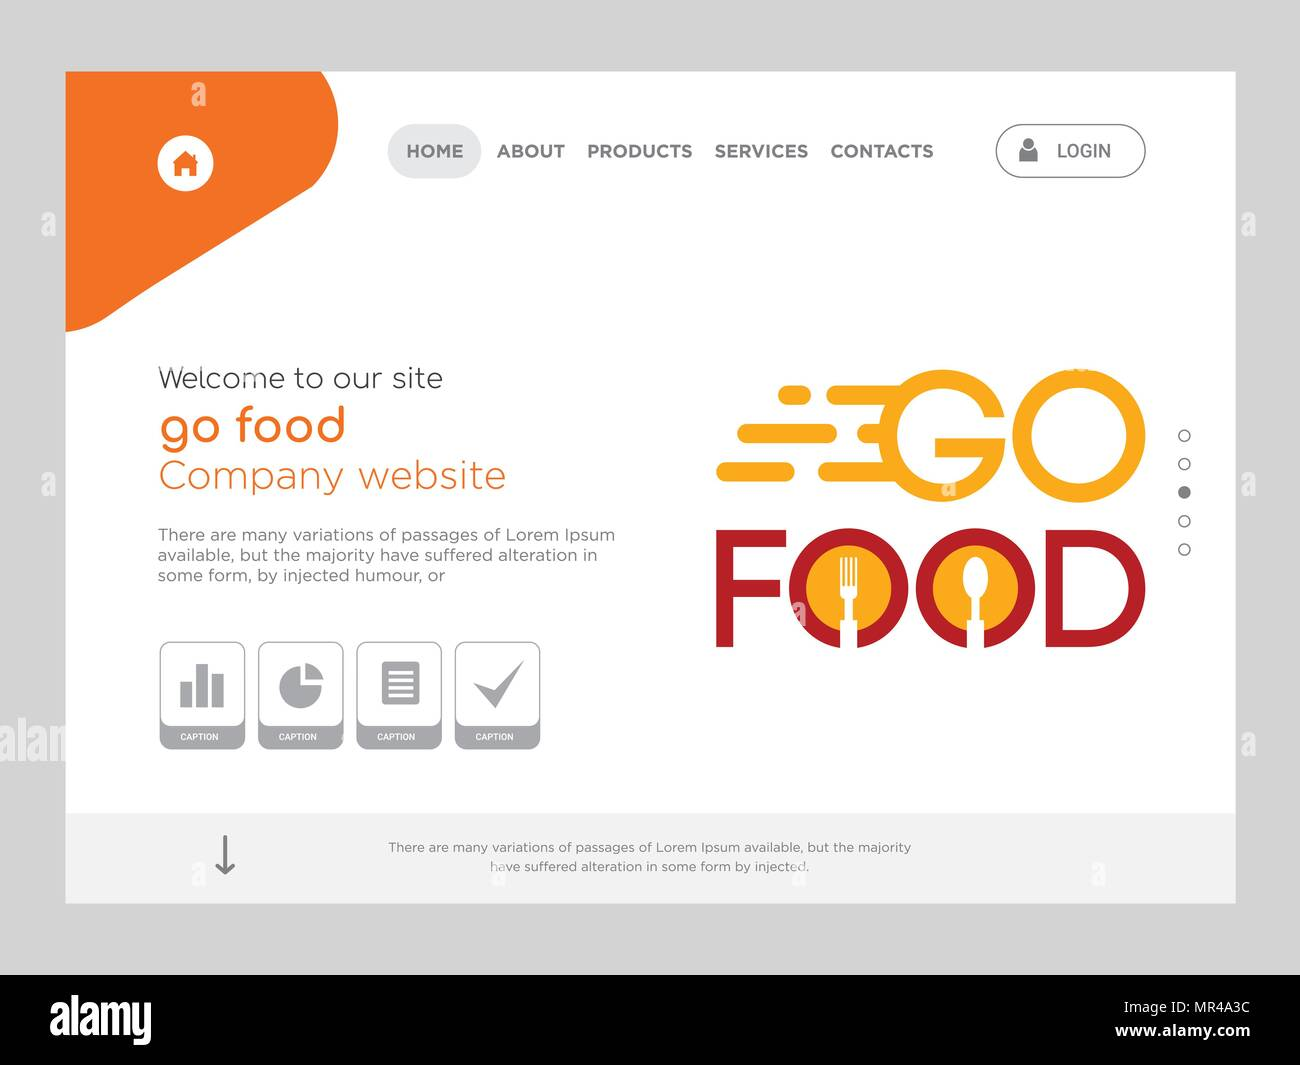 Quality One Page Go Food Website Template Vector Eps Modern Web Design With Flat Ui Elements And Landscape Illustration Ideal For Landing Page Stock Vector Image Art Alamy